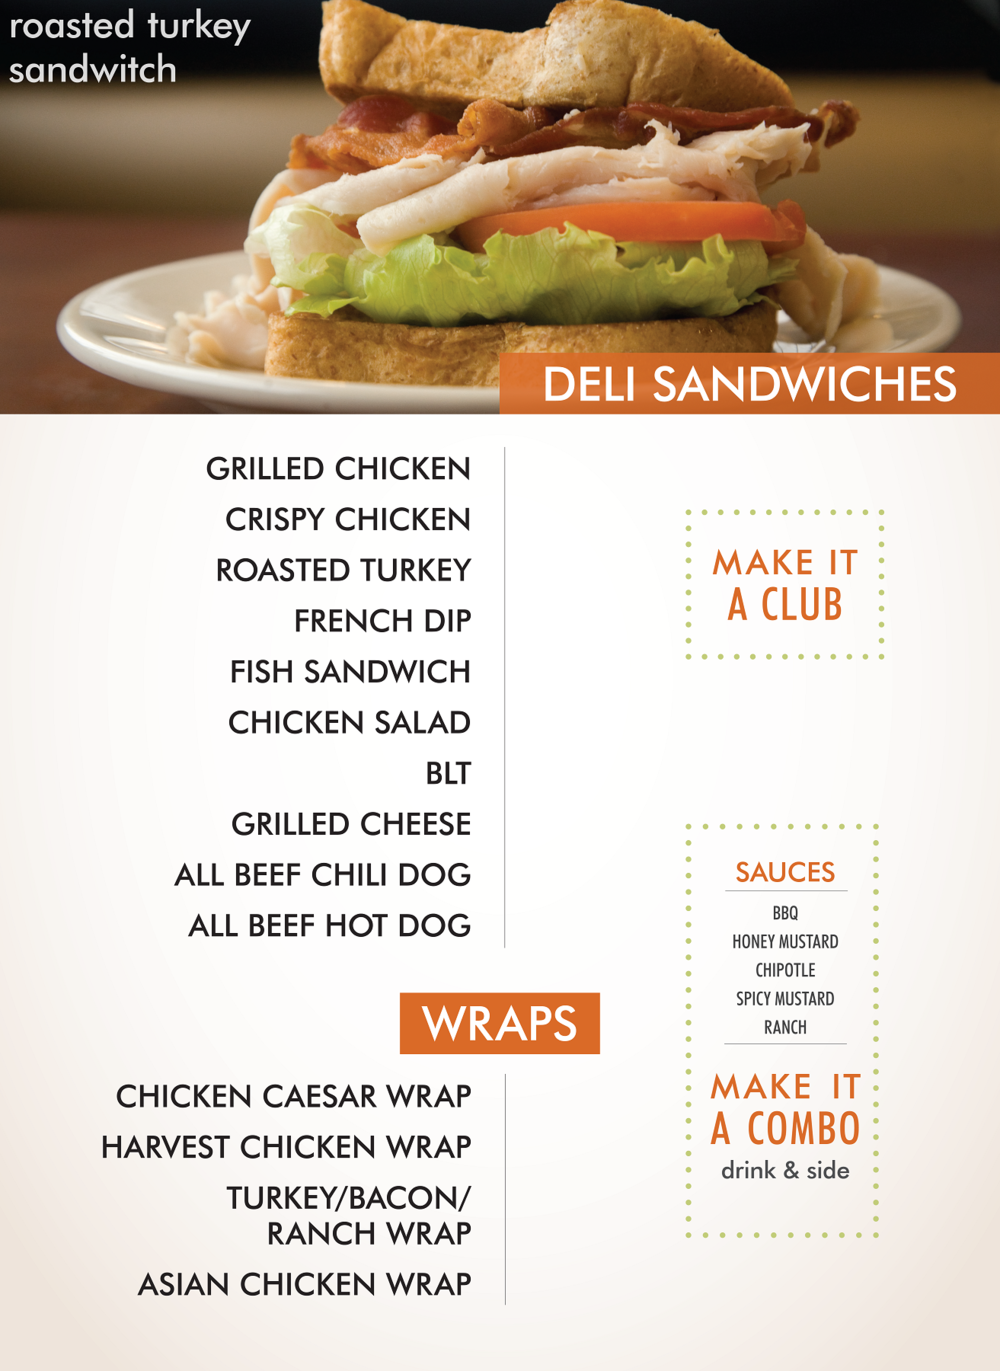 DELI SANDWITCHES